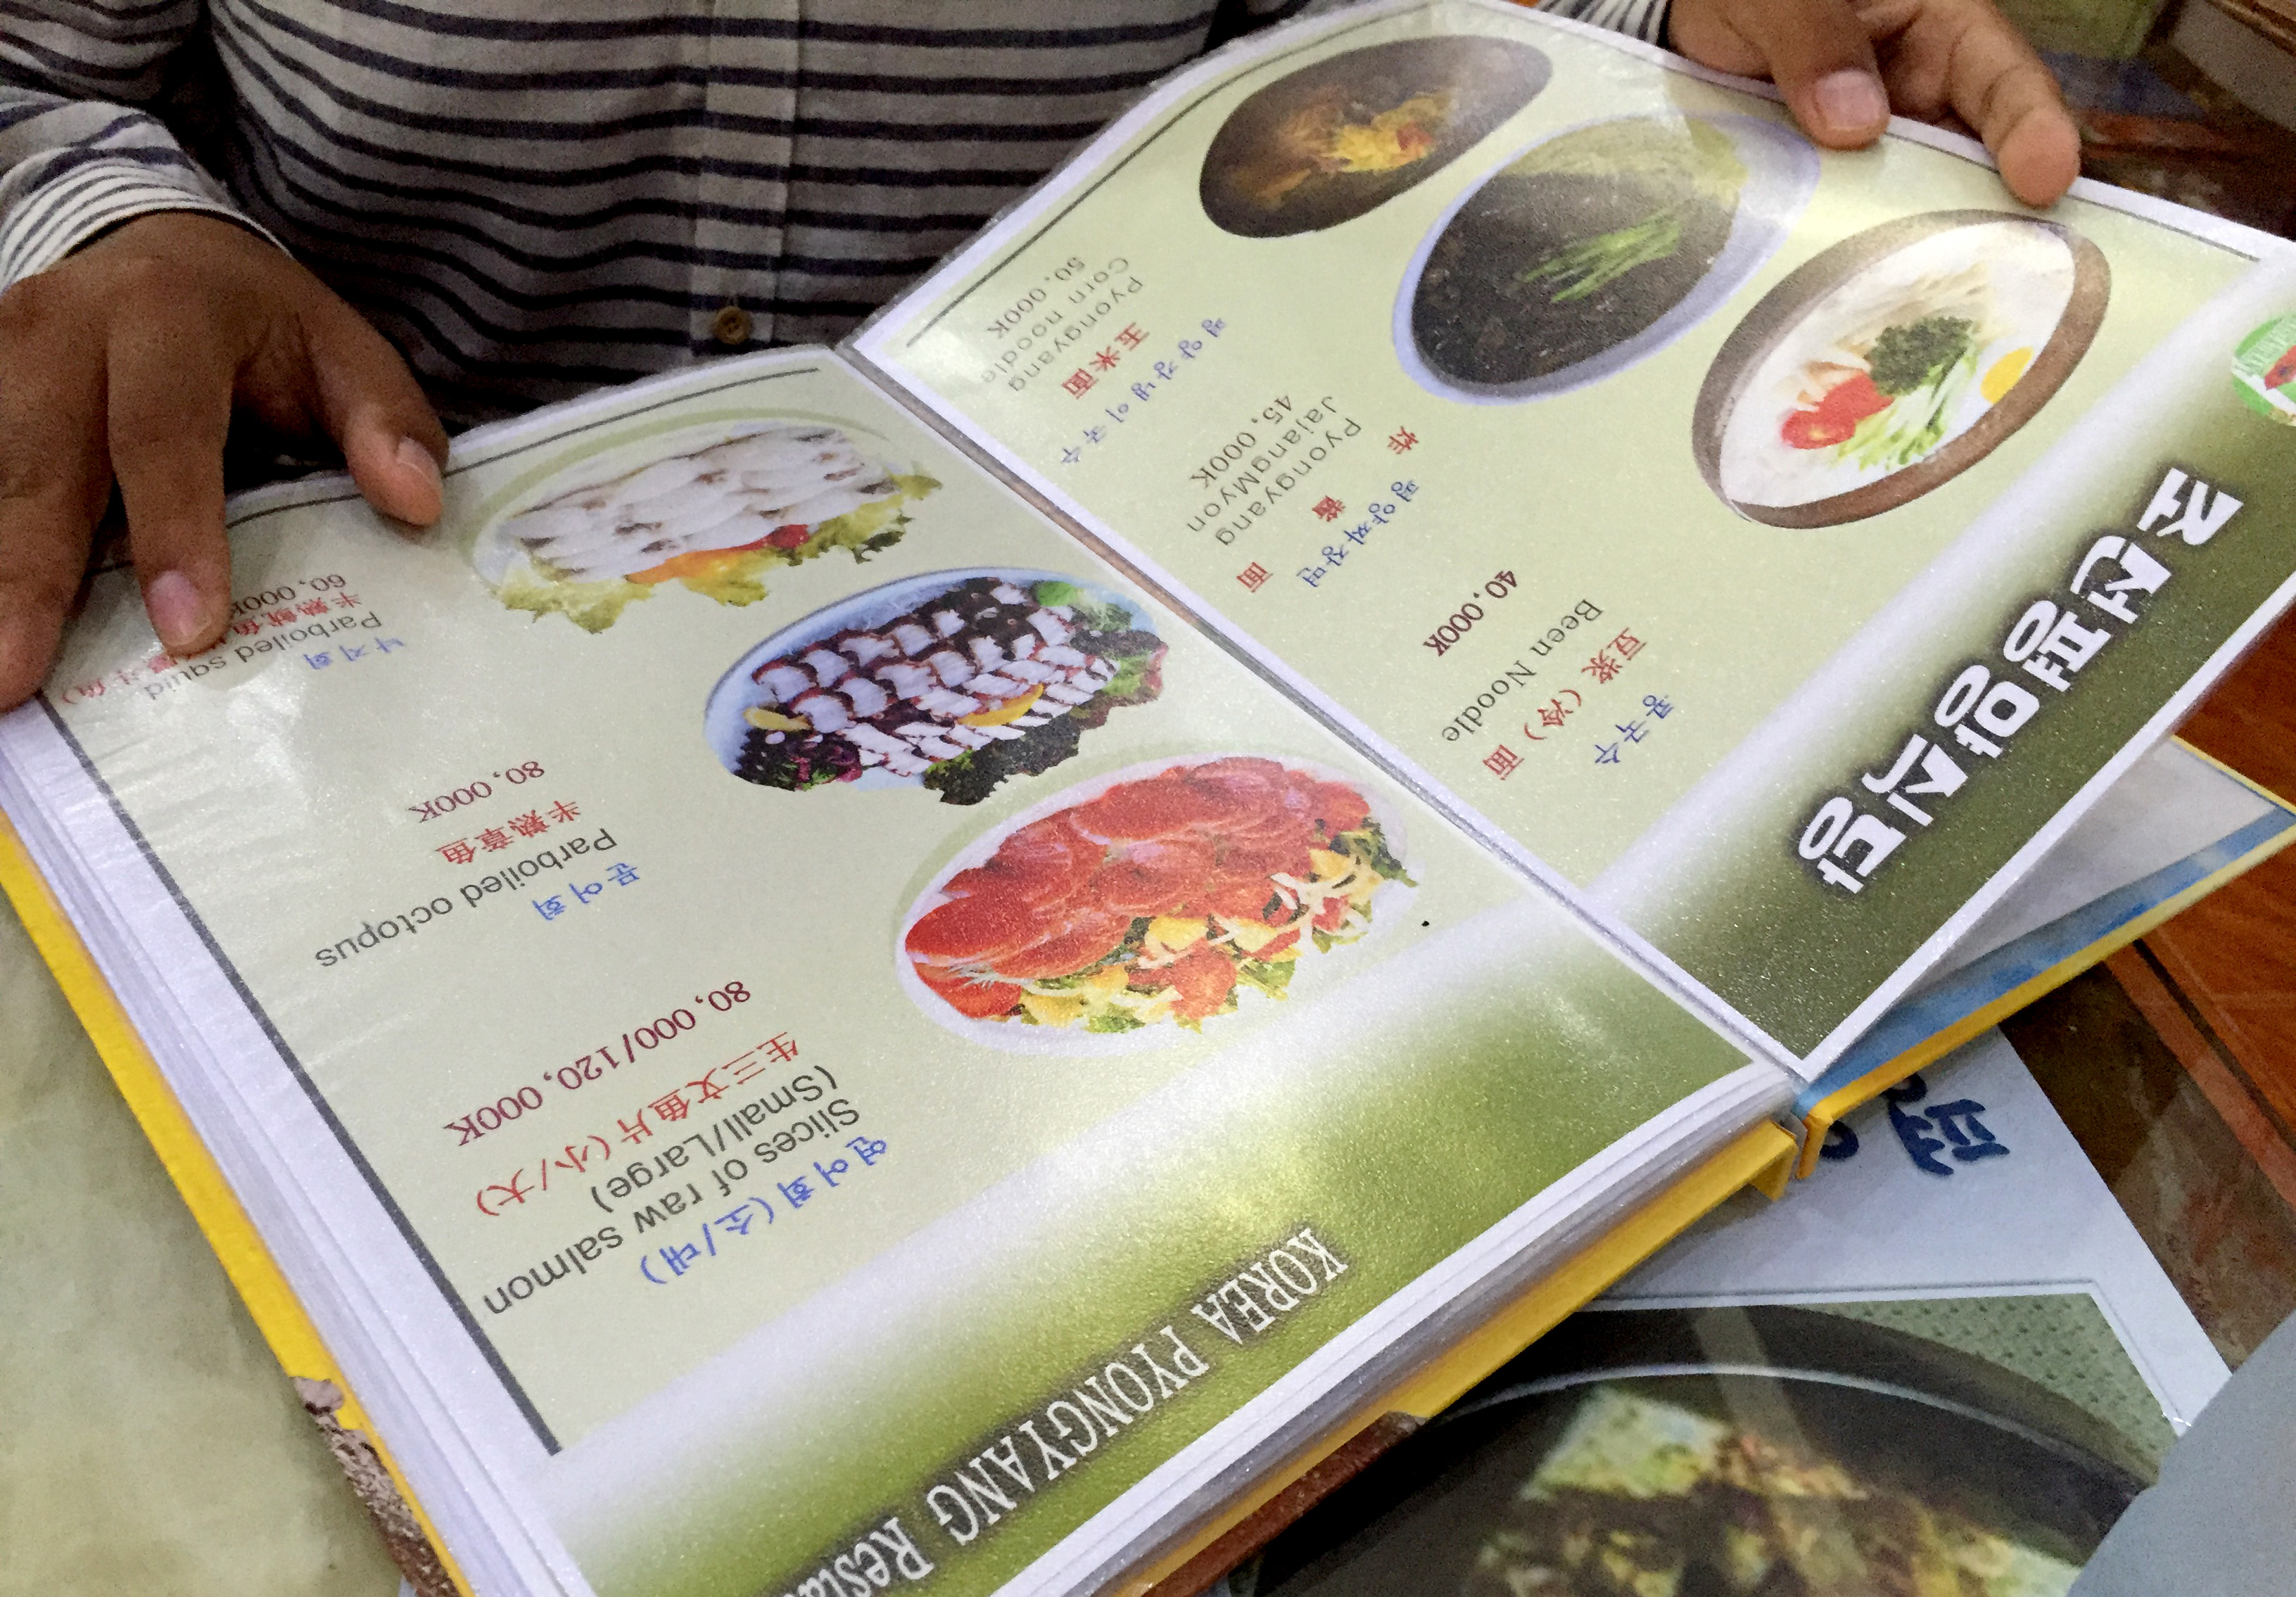 North Korean-run restaurants outside the country are said to number at least 100, and their menus are typically similar. Curiously, the main dishes here aren't served with the Korean dining staple of banchan, or side dishes, which usually come for free. Instead, this restaurant charged for them.